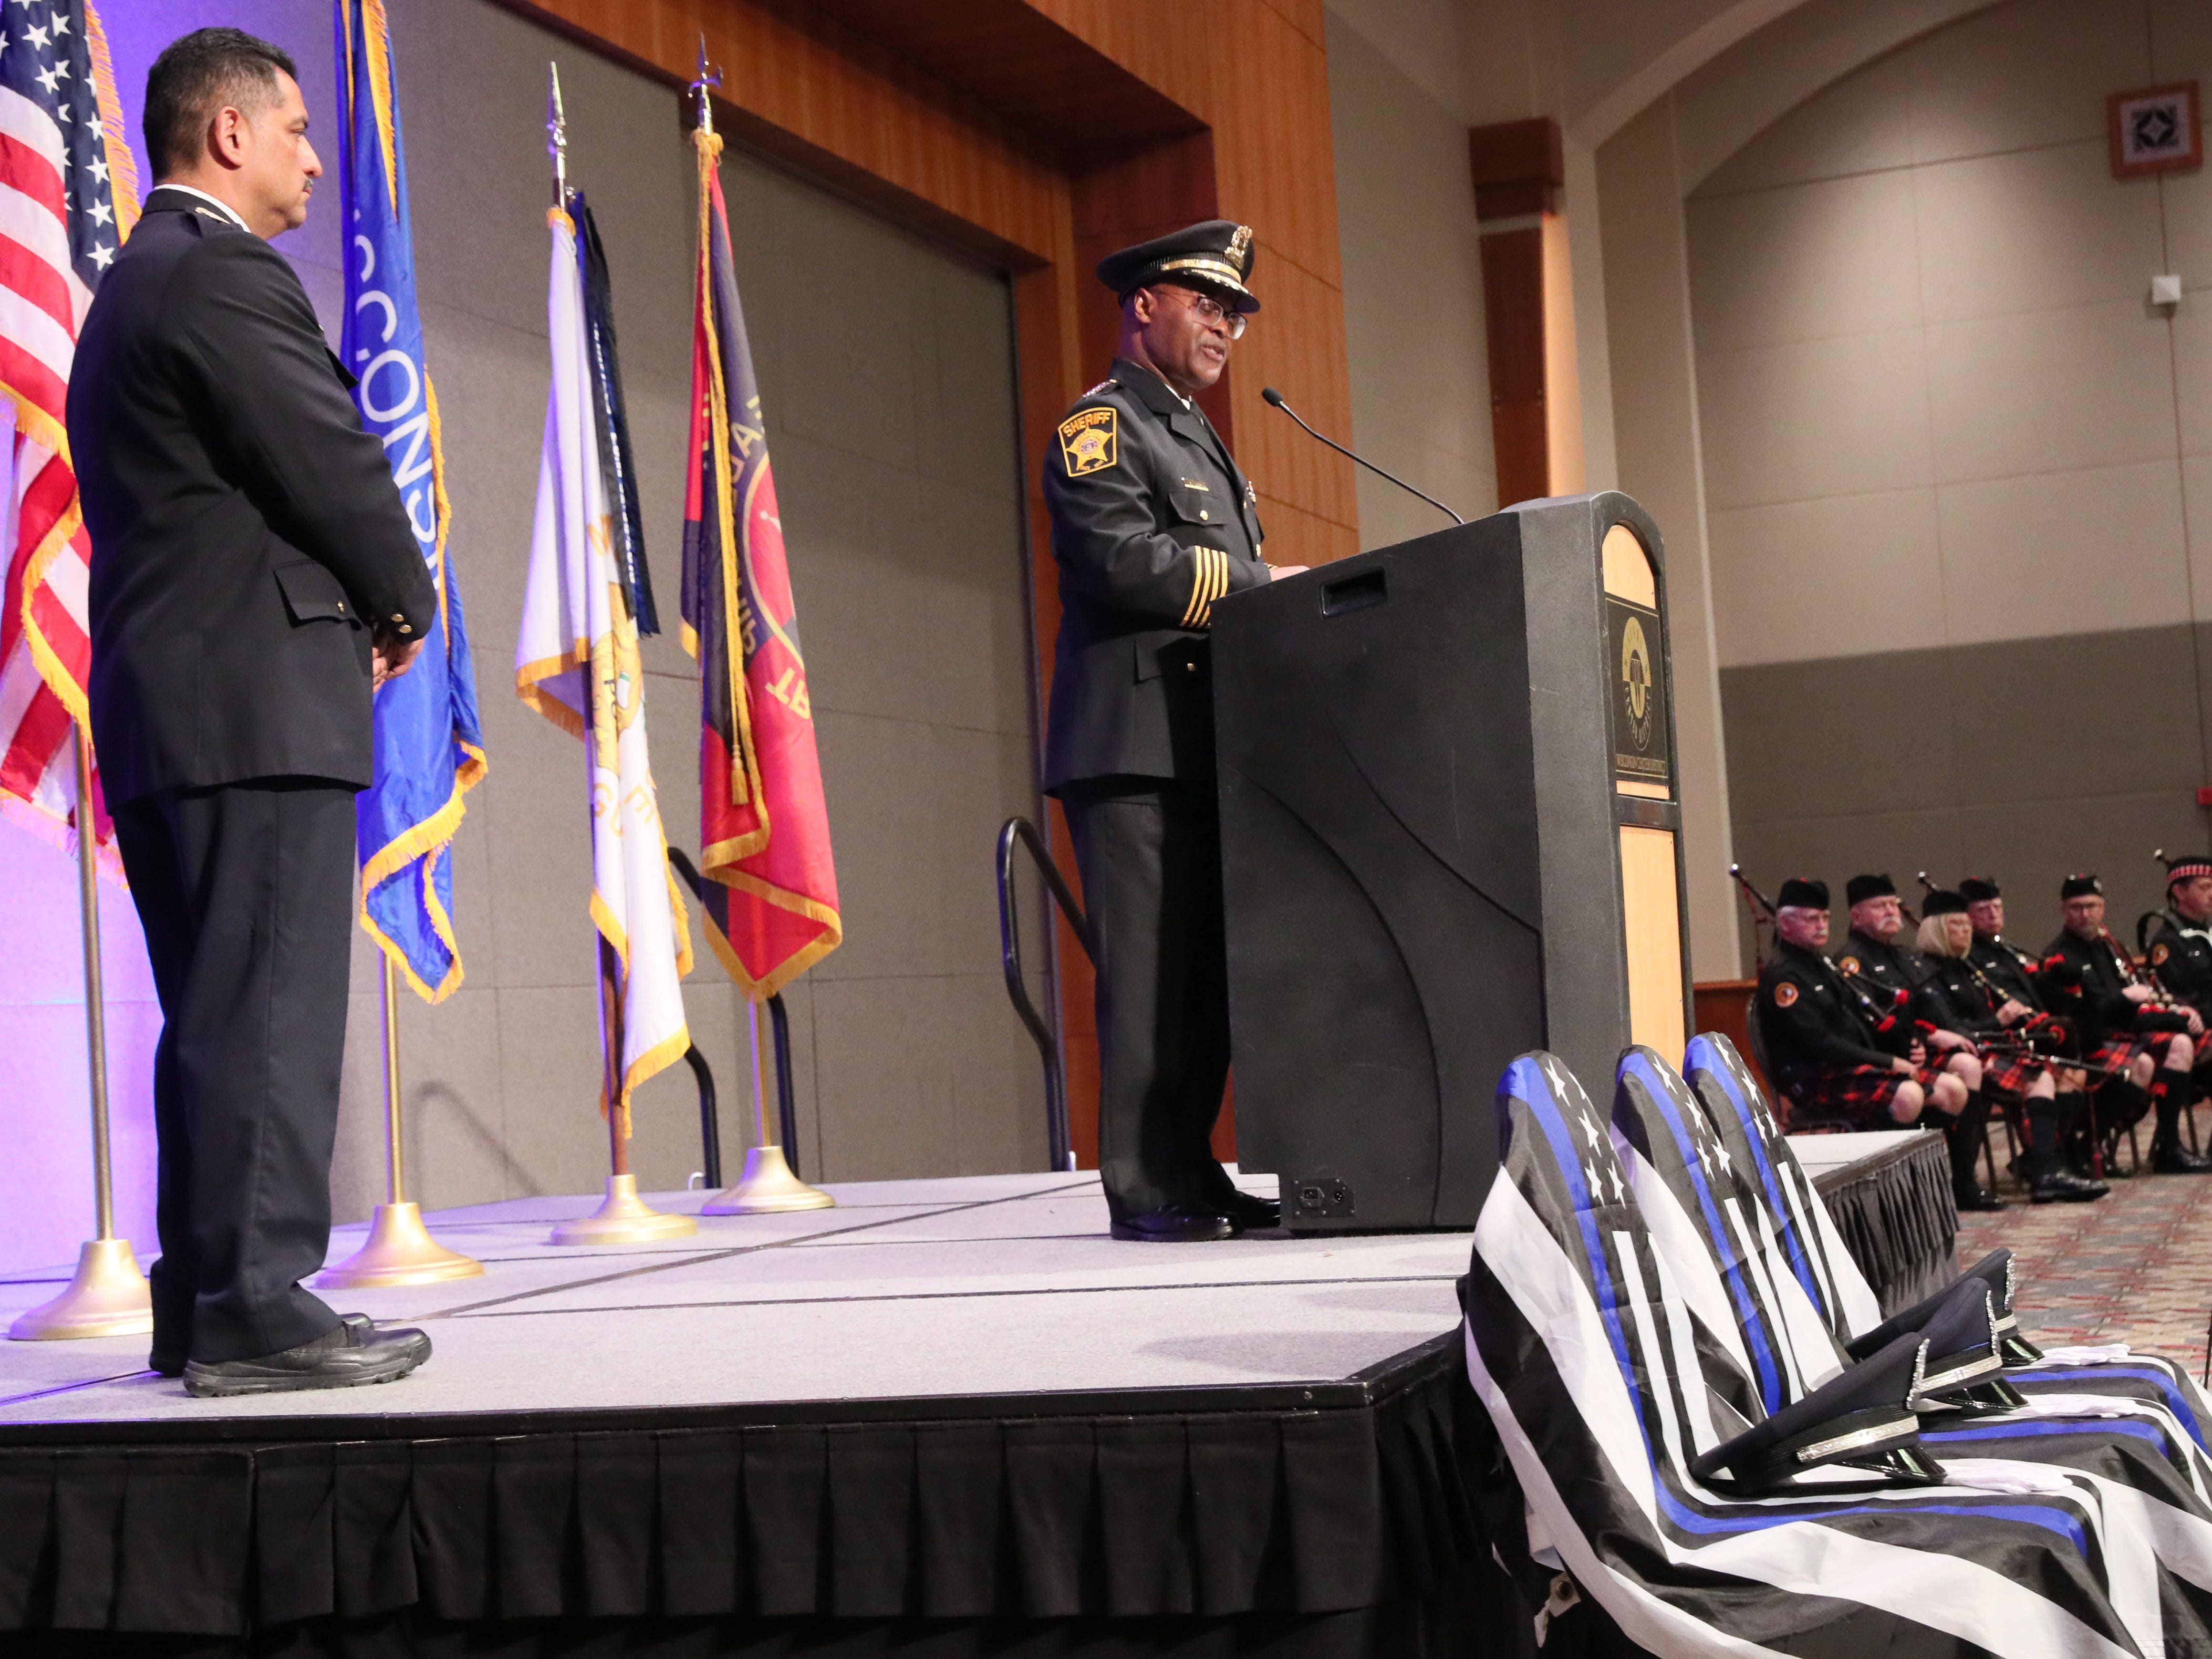 Milwaukee Police Chief Alfonso Morales, left, and Milwaukee County Sheriff Earnell R. Lucas both spoke at the event.  The three chairs in front of the stage draped with the law enforcement flag are in memory of the three officers killed since last year's Law Enforcement Memorial Service.